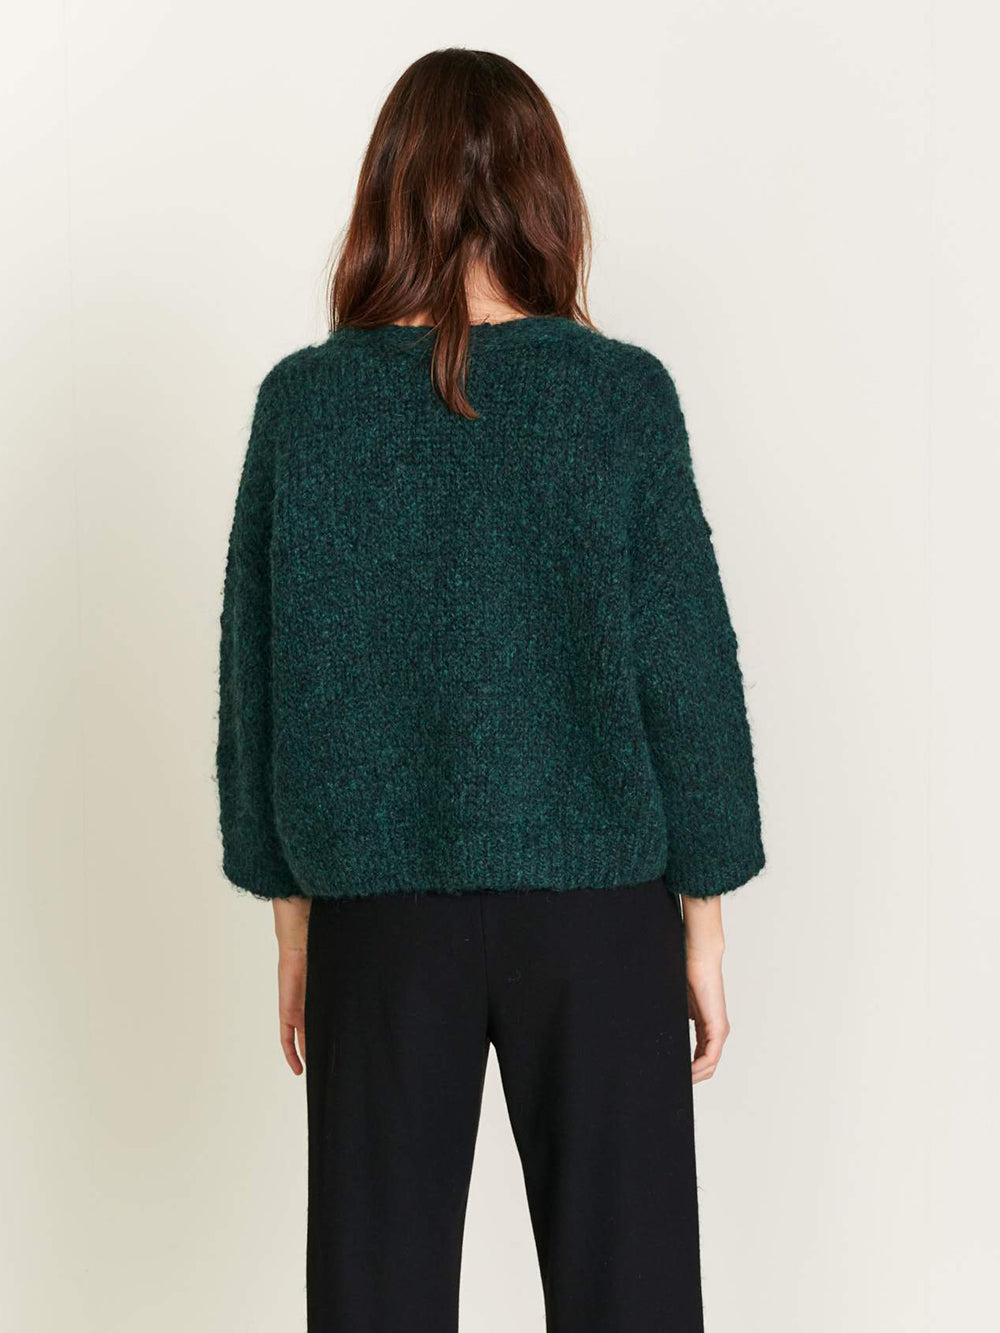 bellerose aclon sweater in kombu